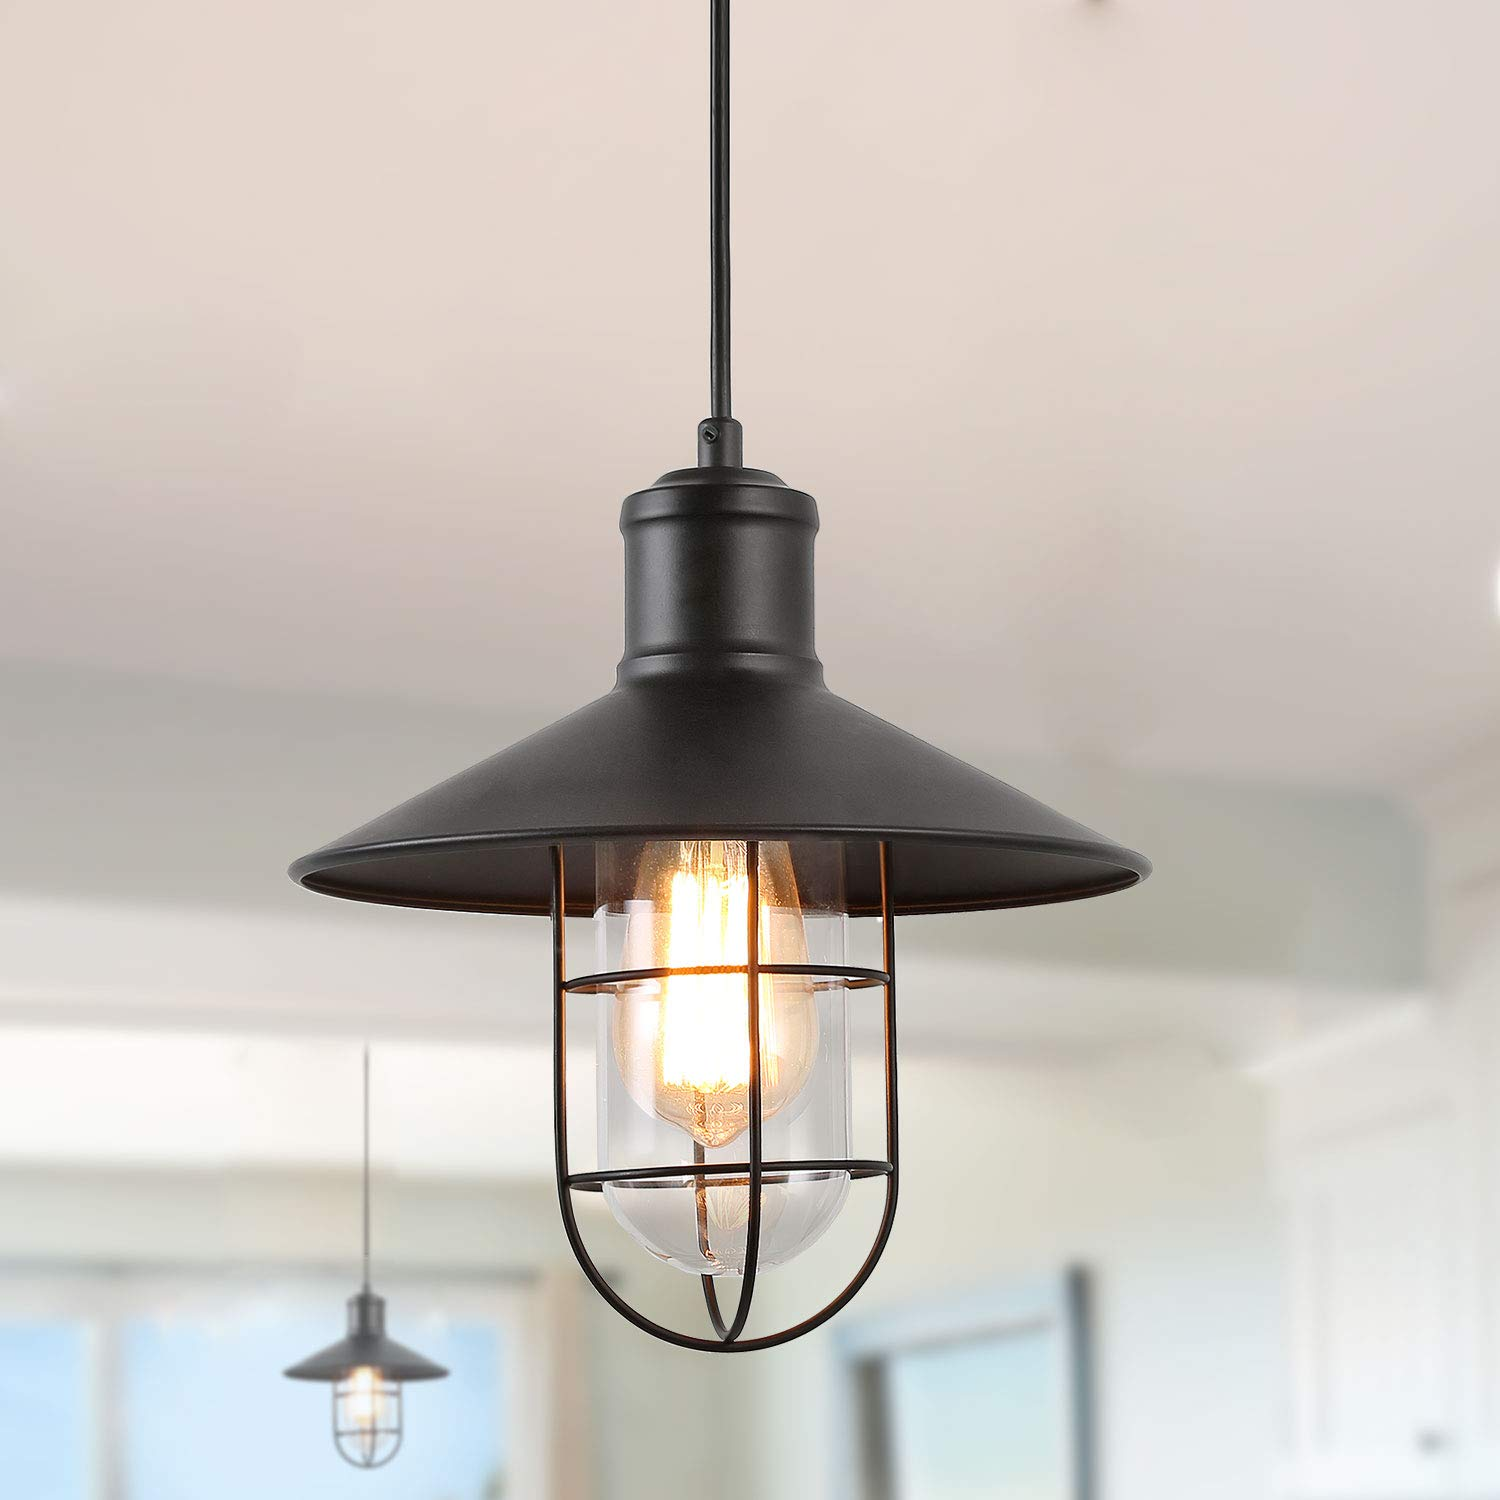 Lnc pendant lighting for kitchen island black ceiling hanging lamp a01910